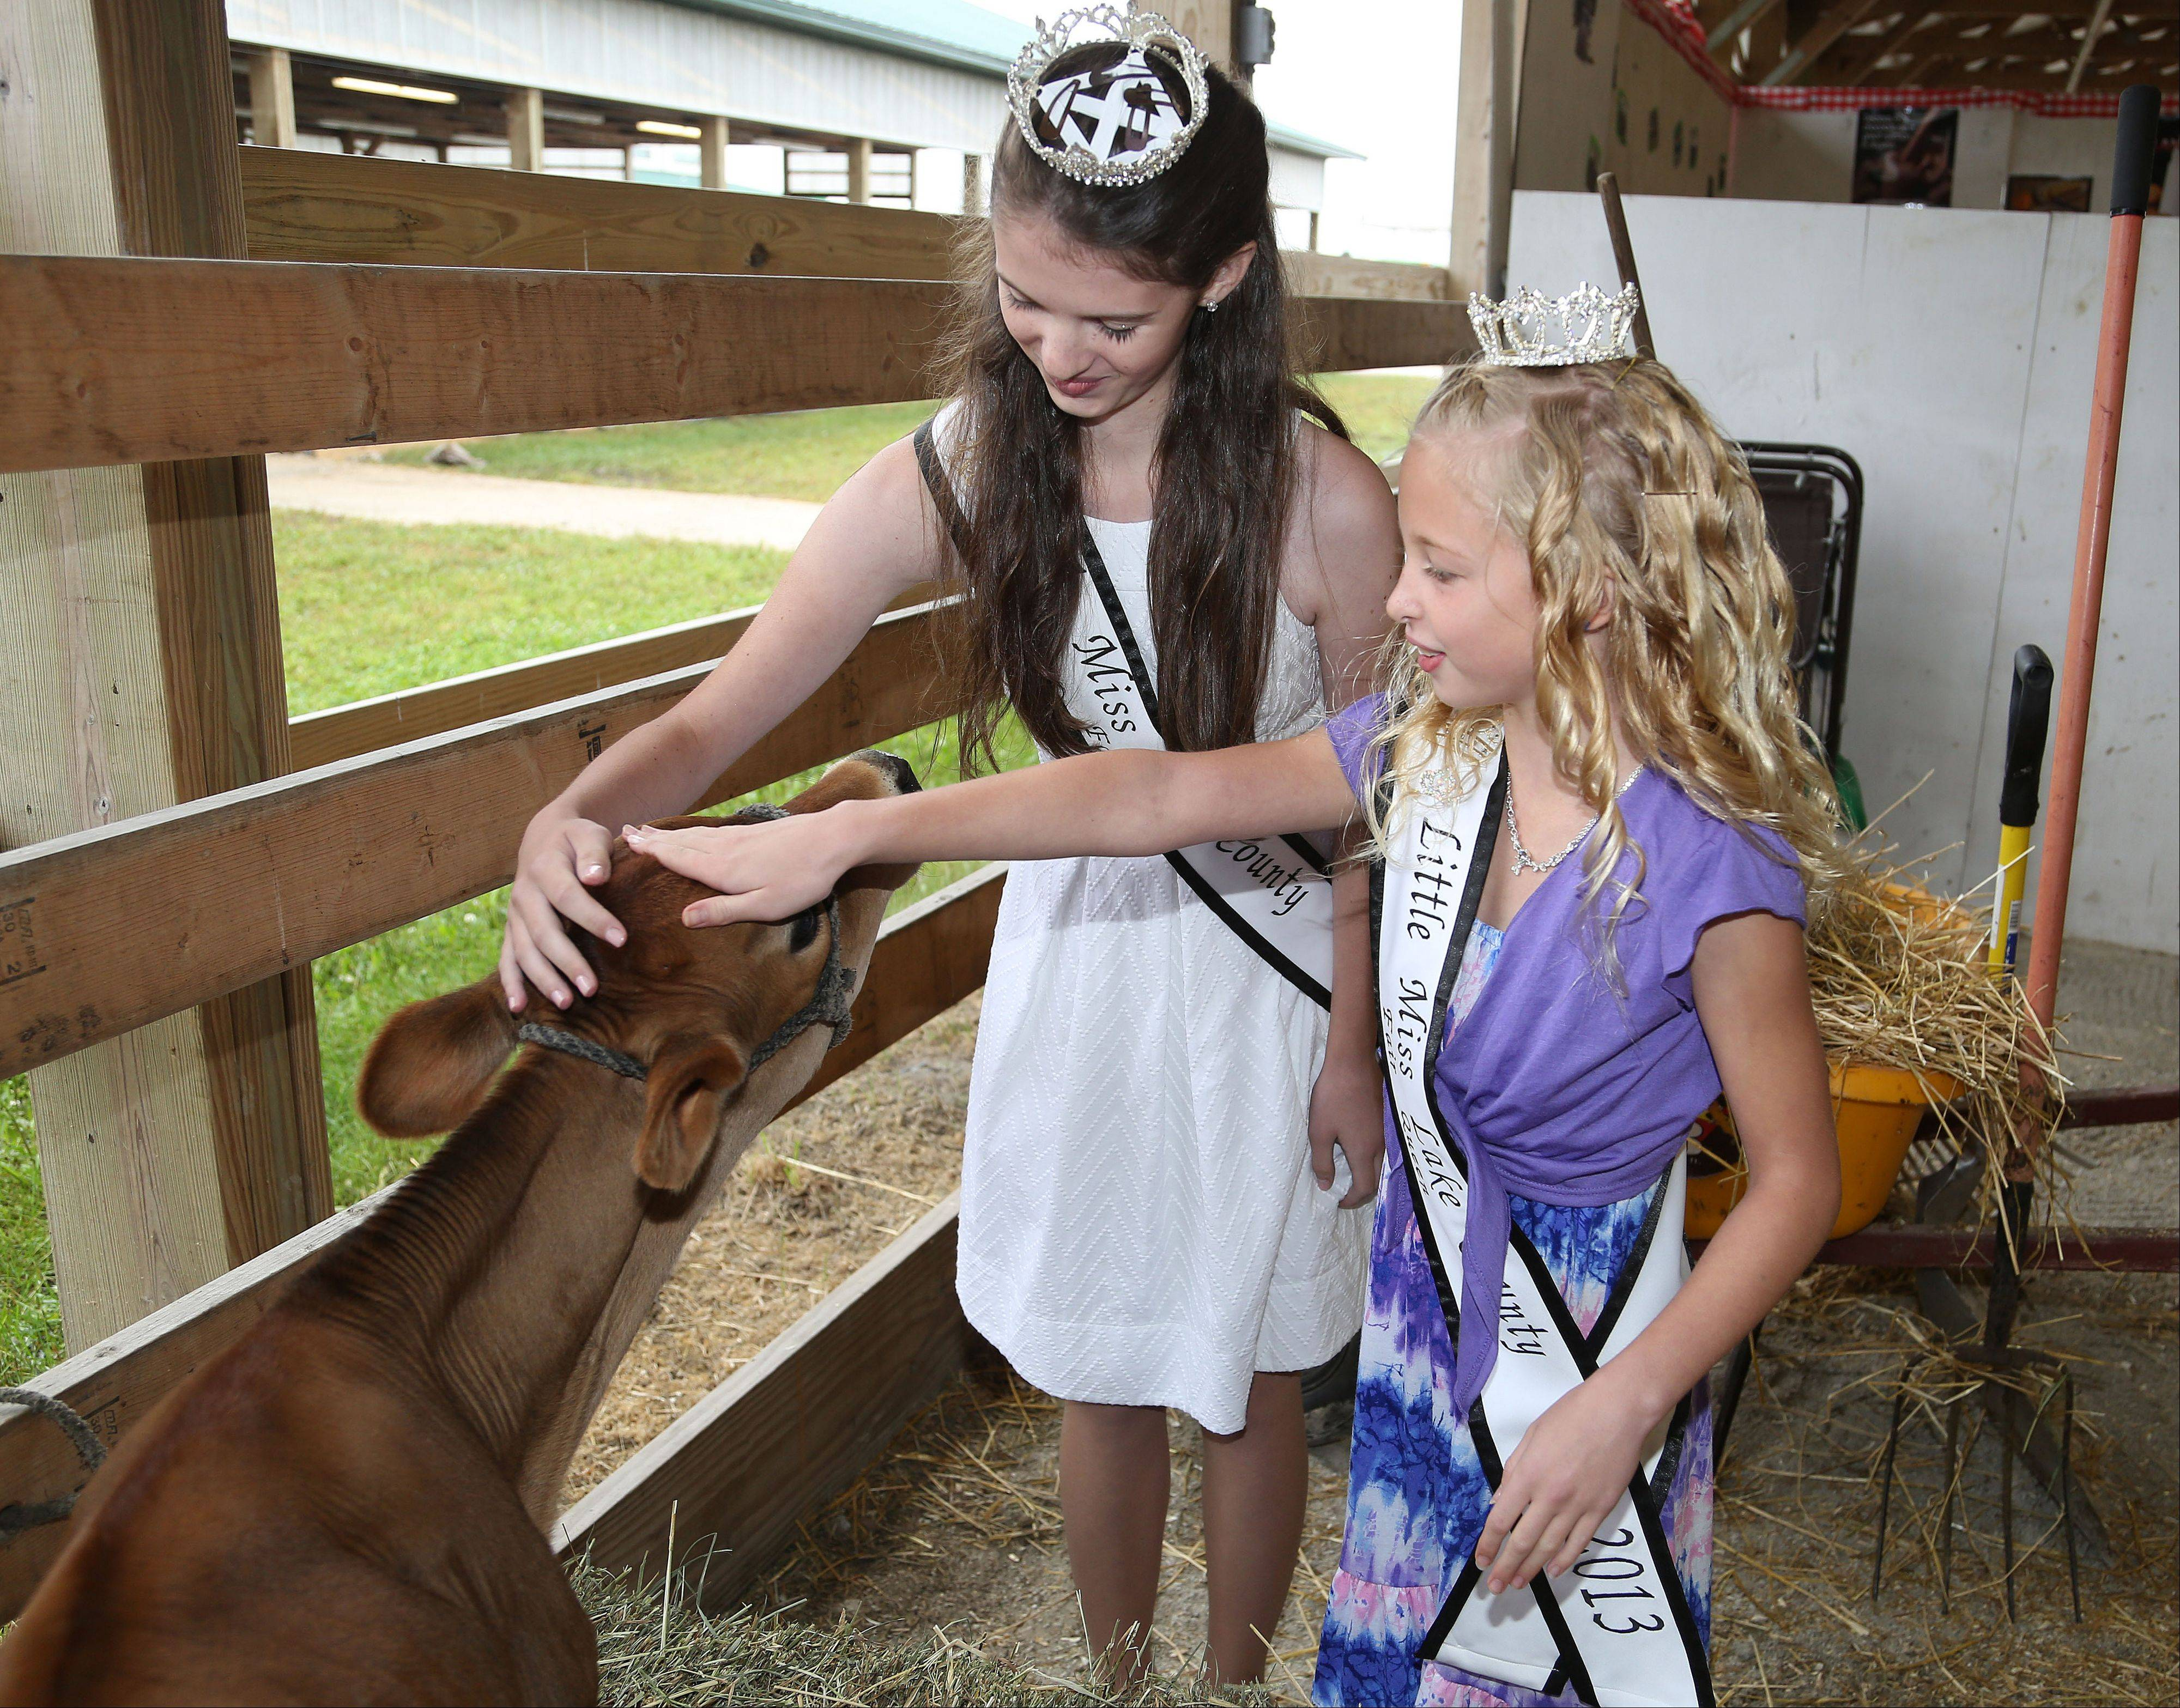 Jr. Miss Lake County Charlotte Roberts, 13, of Grayslake and Little Miss Lake County Victoria Weaver, 8, of Mundelein pet a dairy calf Friday at the Lake County Fair in Grayslake.